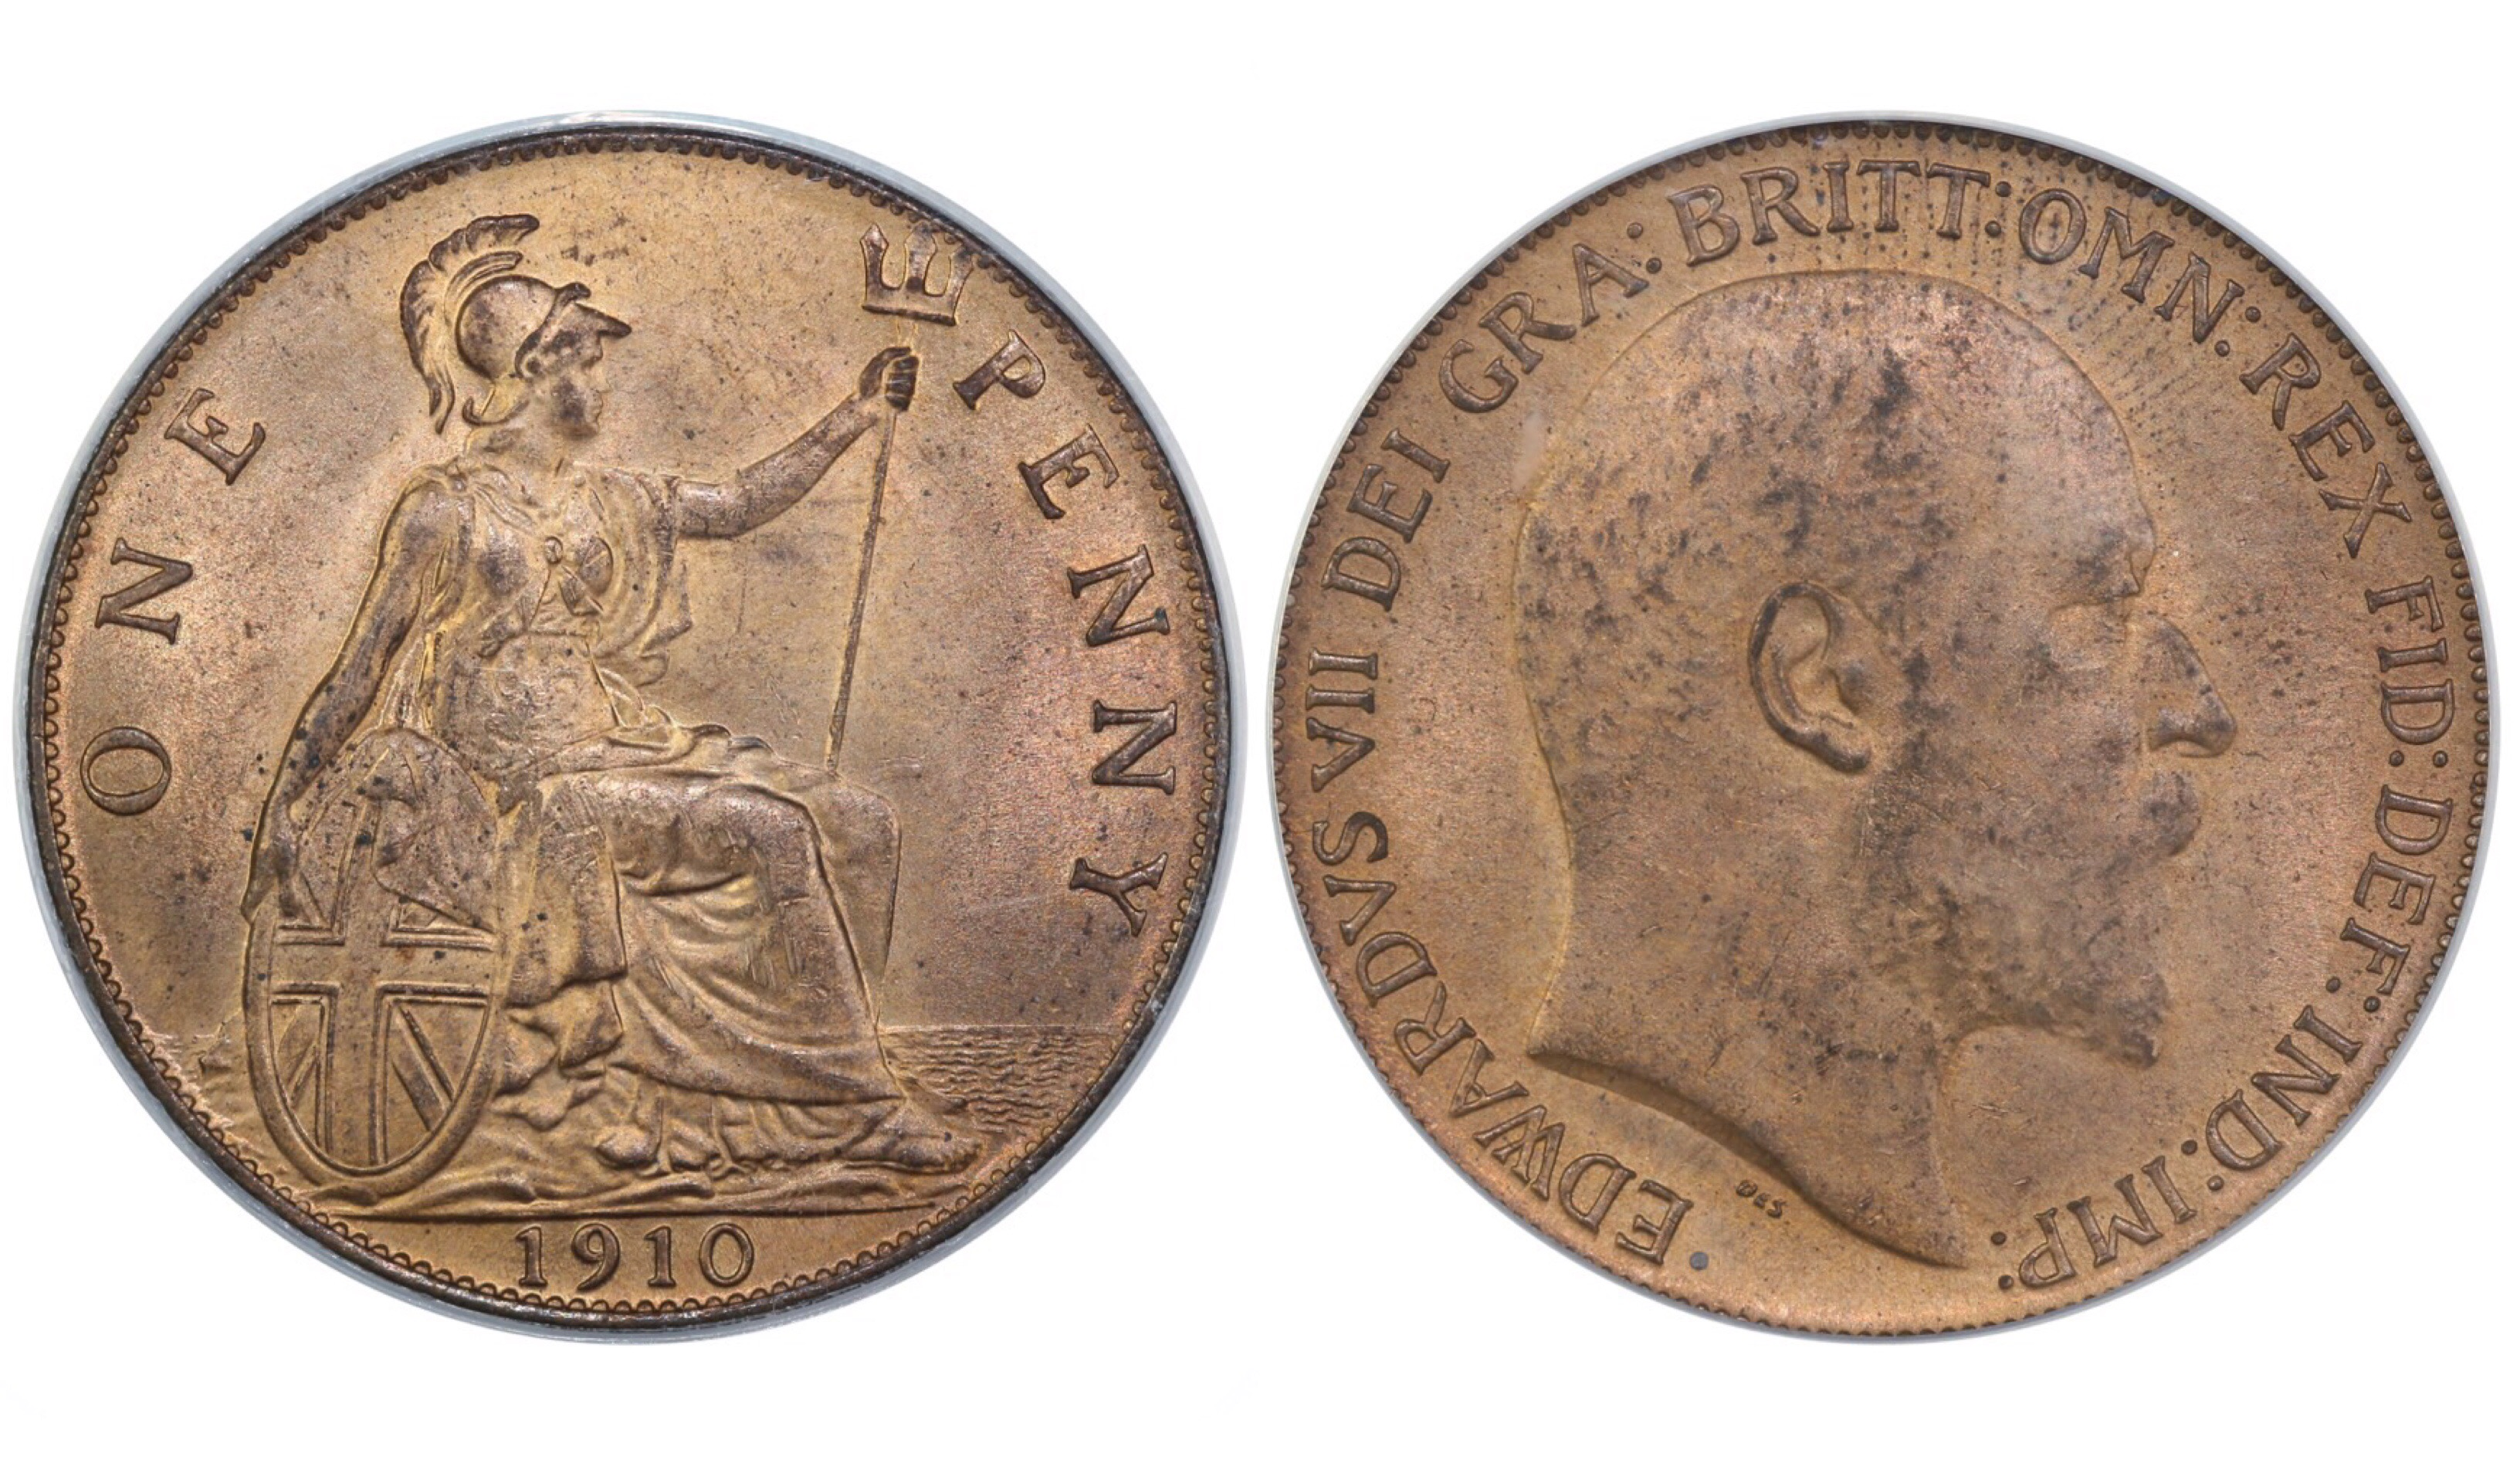 1910 Penny, CGS 75, Edward VII, Freeman 170, UIN 11885, sold at FB auction